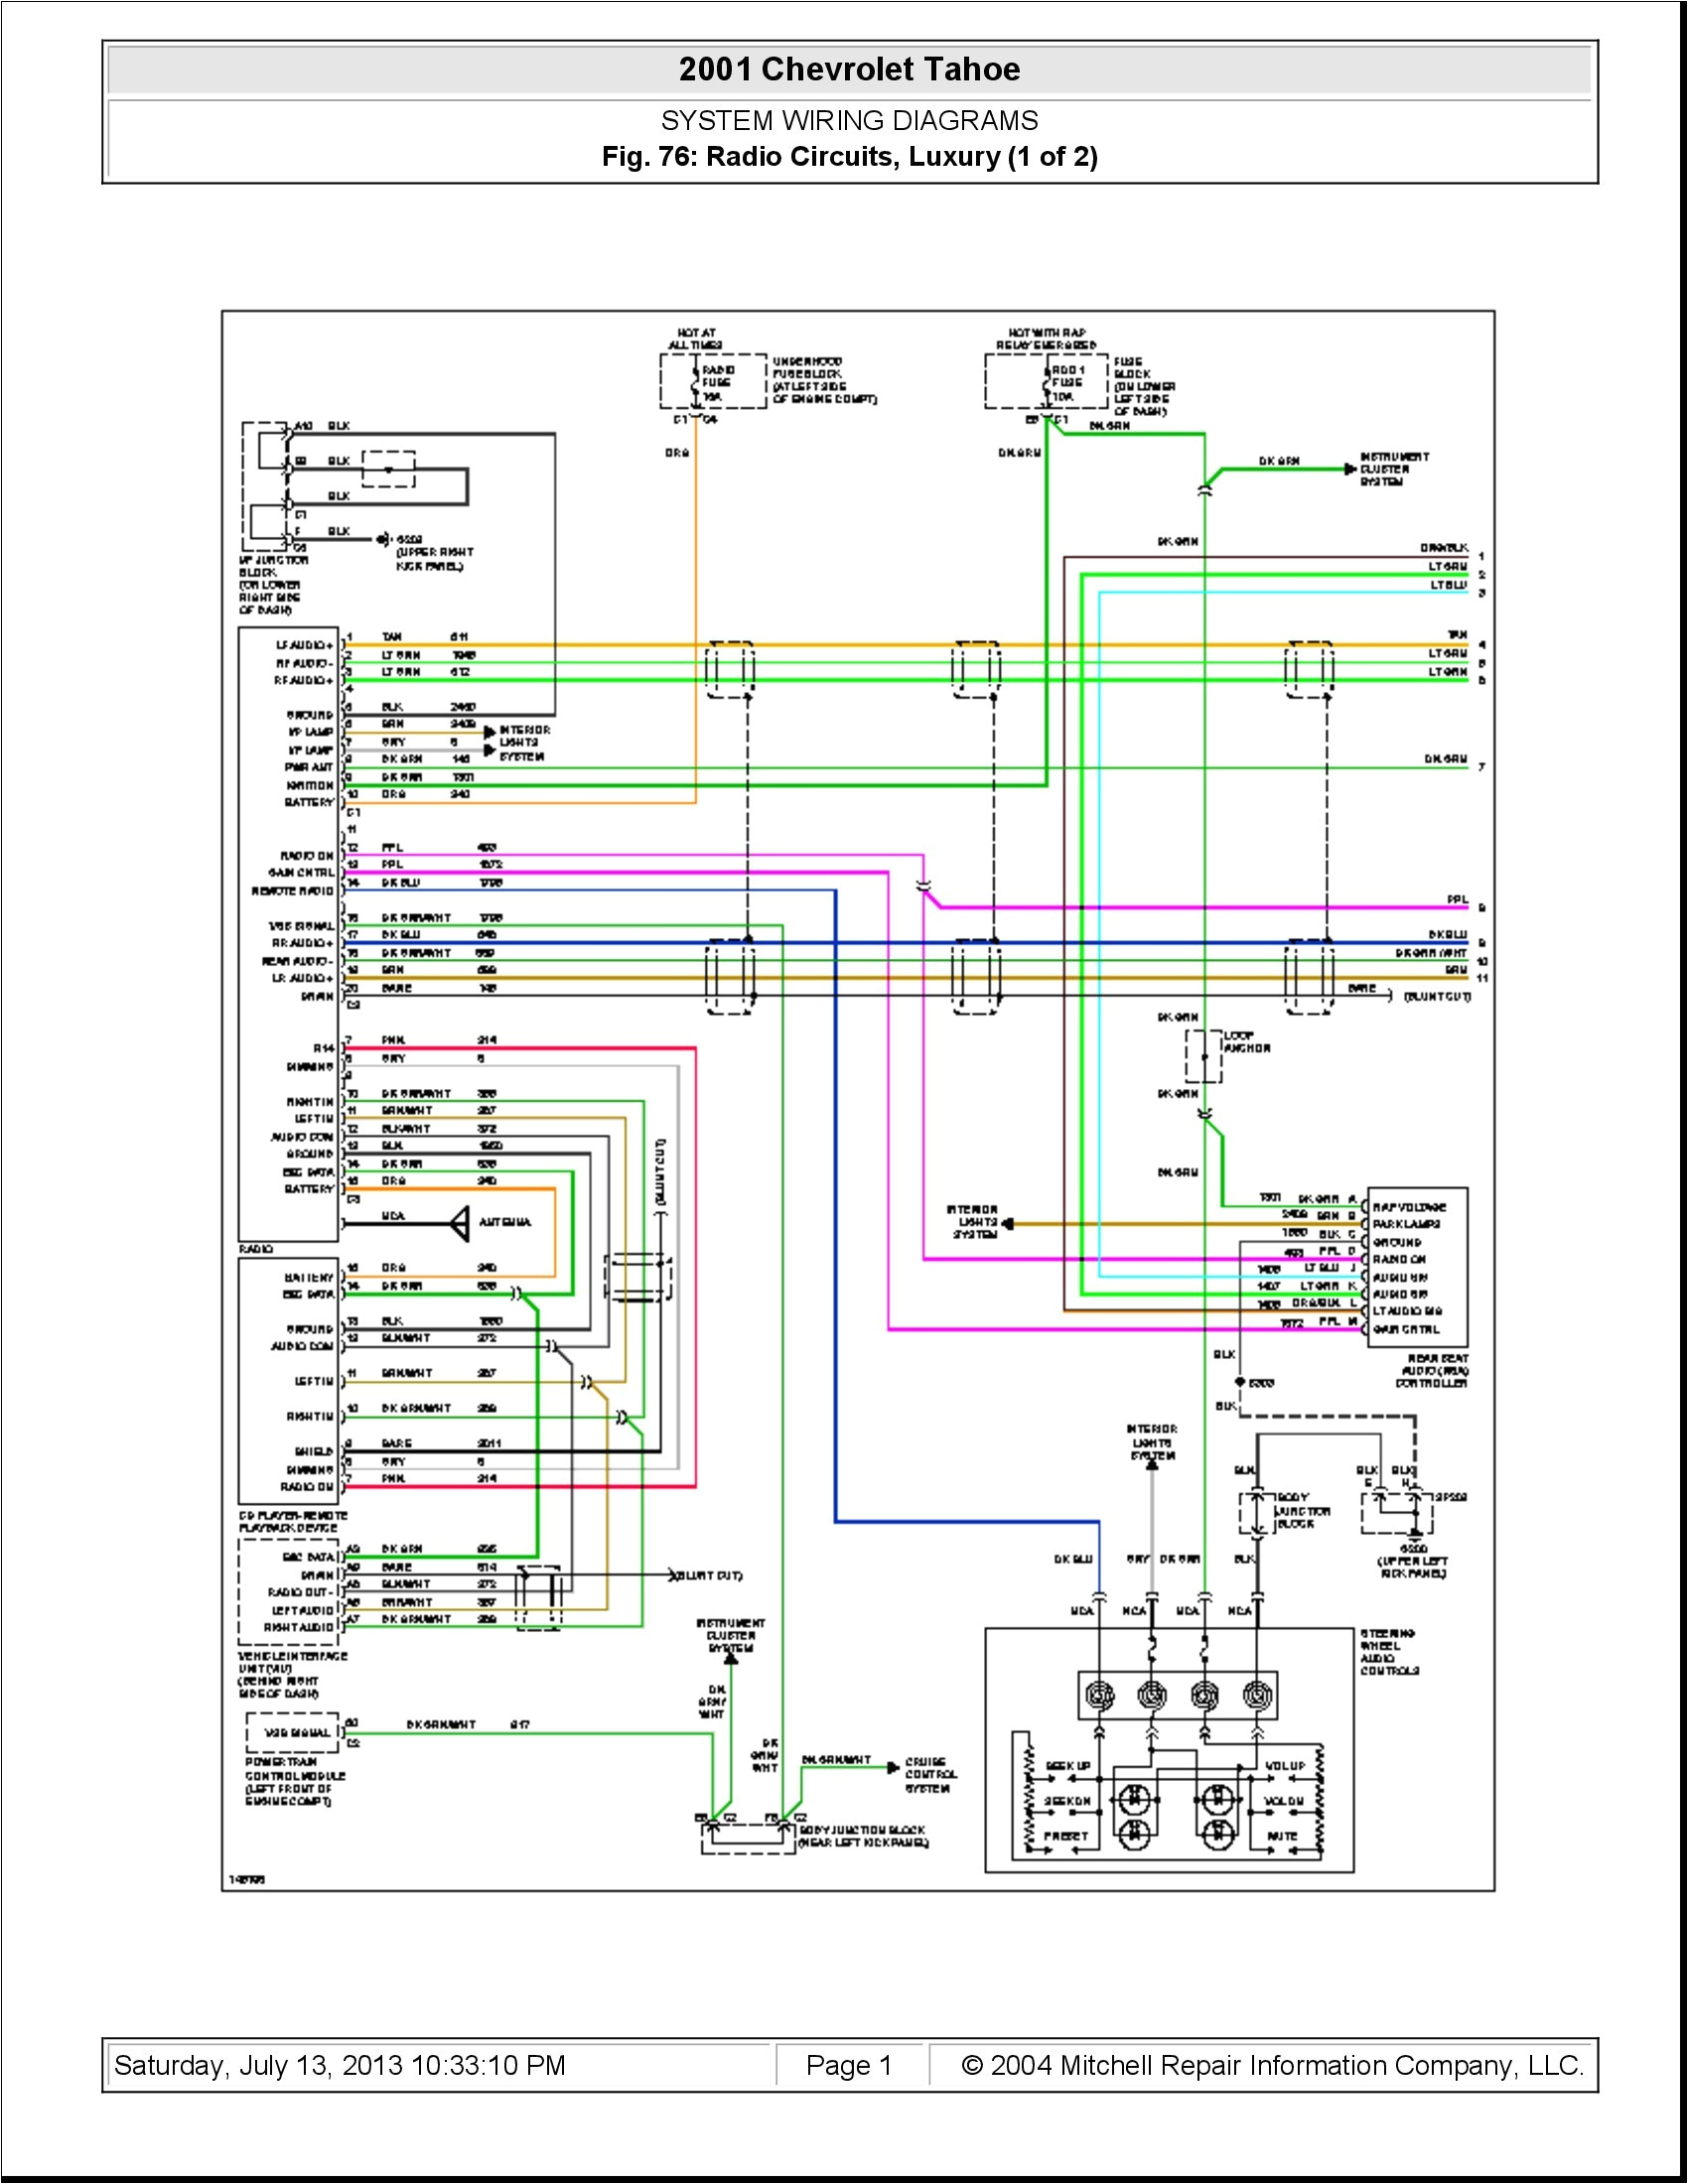 emo wire diagram wiring diagram expertcar radio wiring diagram chevrolet wiring diagram sys emo wire diagram